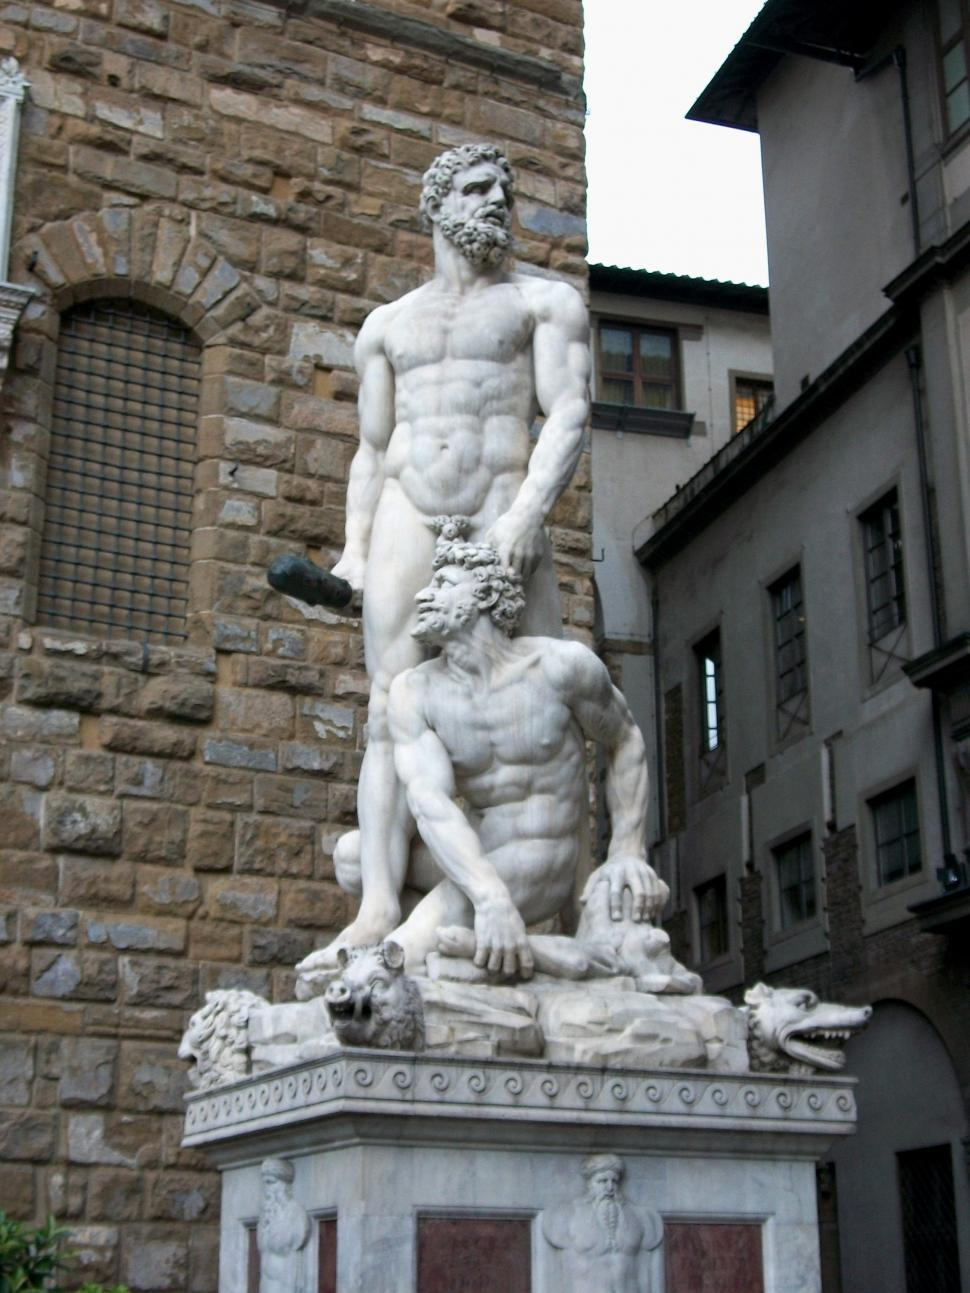 Download Free Stock HD Photo of Statue in Florence, Italy Online